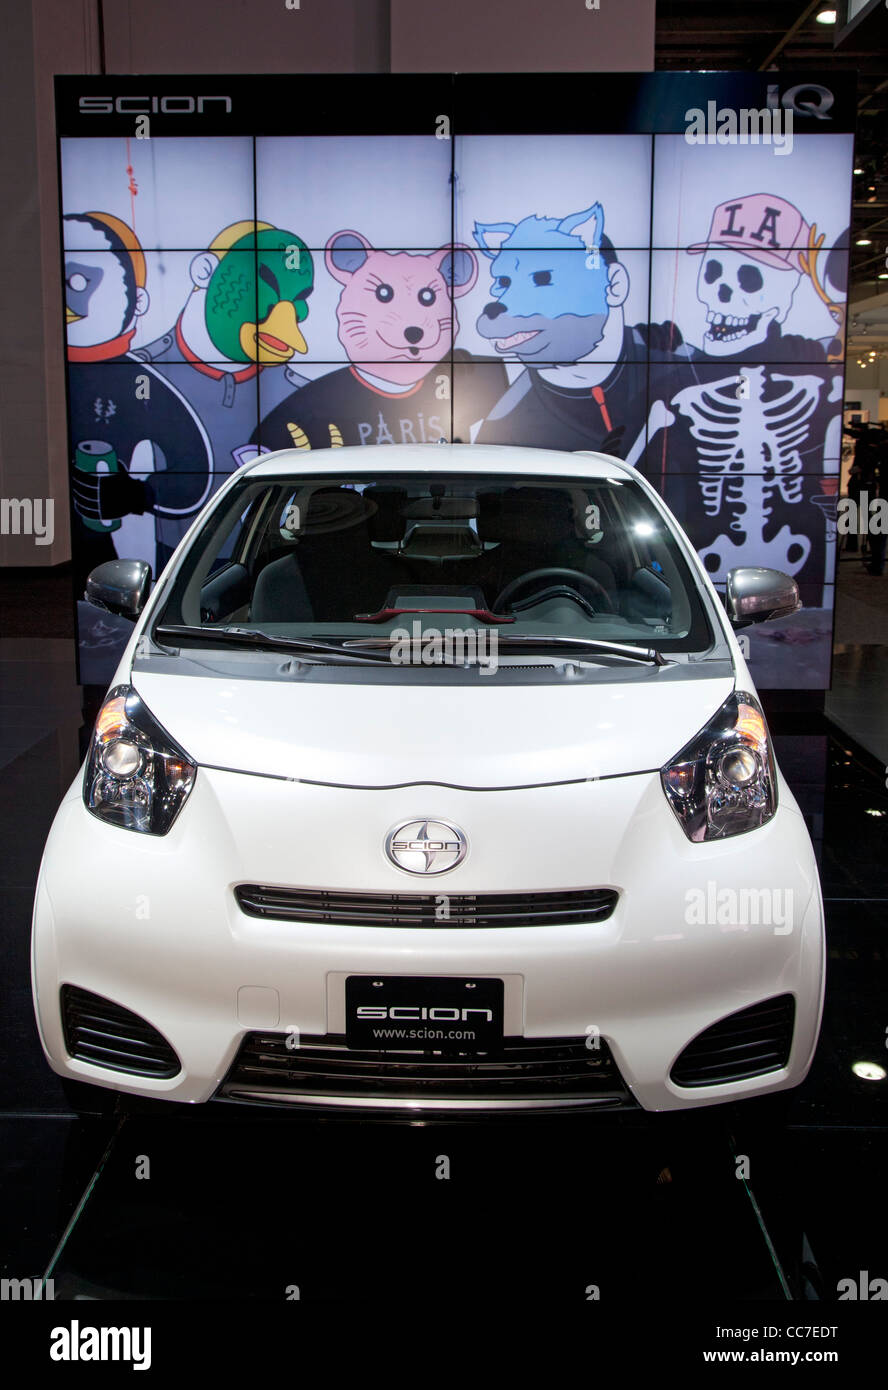 Detroit, Michigan - The Scion IQ on display at the North American International Auto Show. - Stock Image